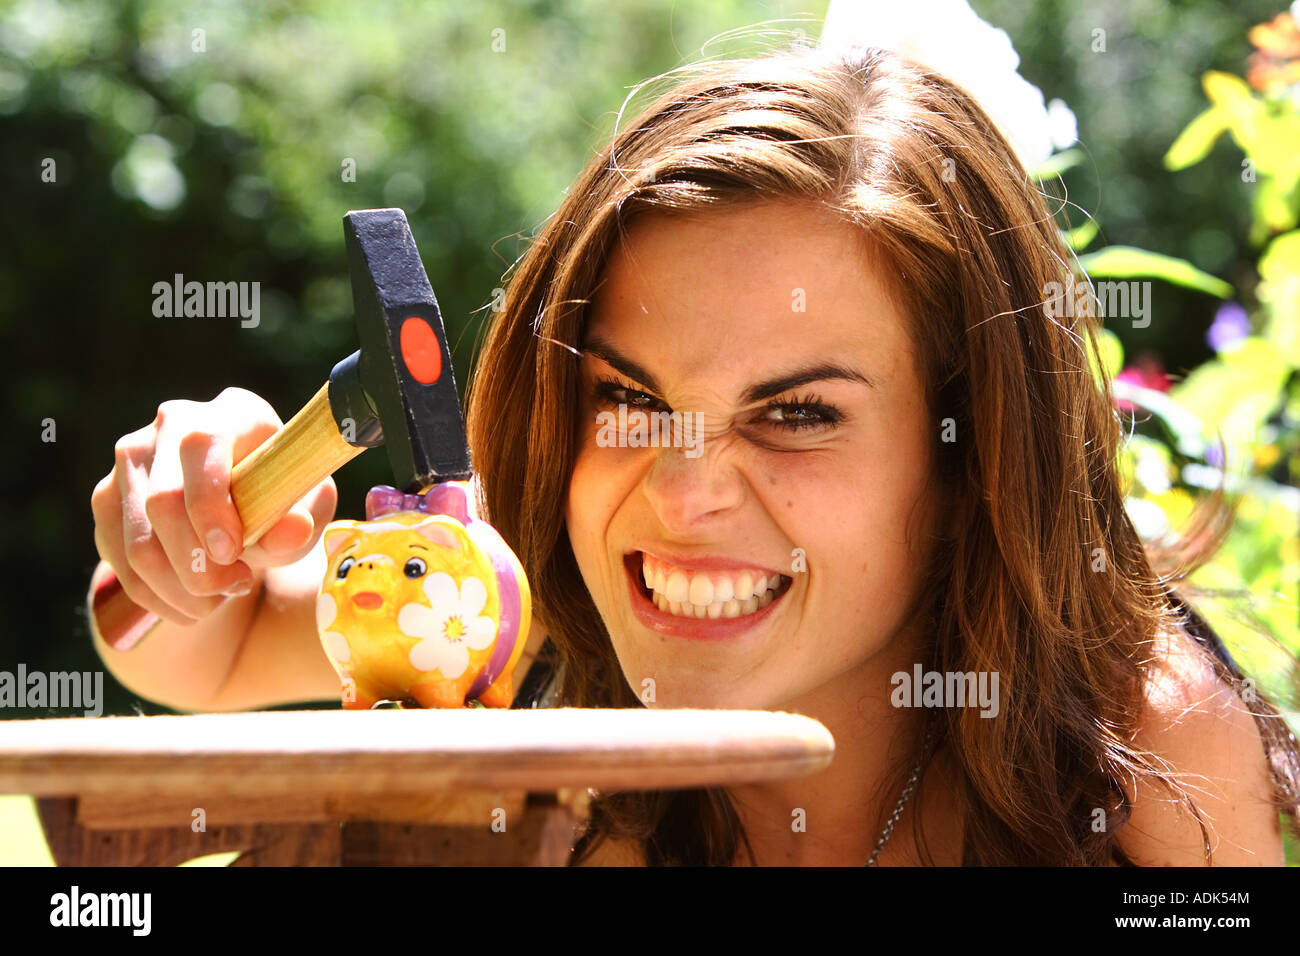 Young woman is robbing a piggy bank with a hammer © Peter Schatz/Alamy - Stock Image